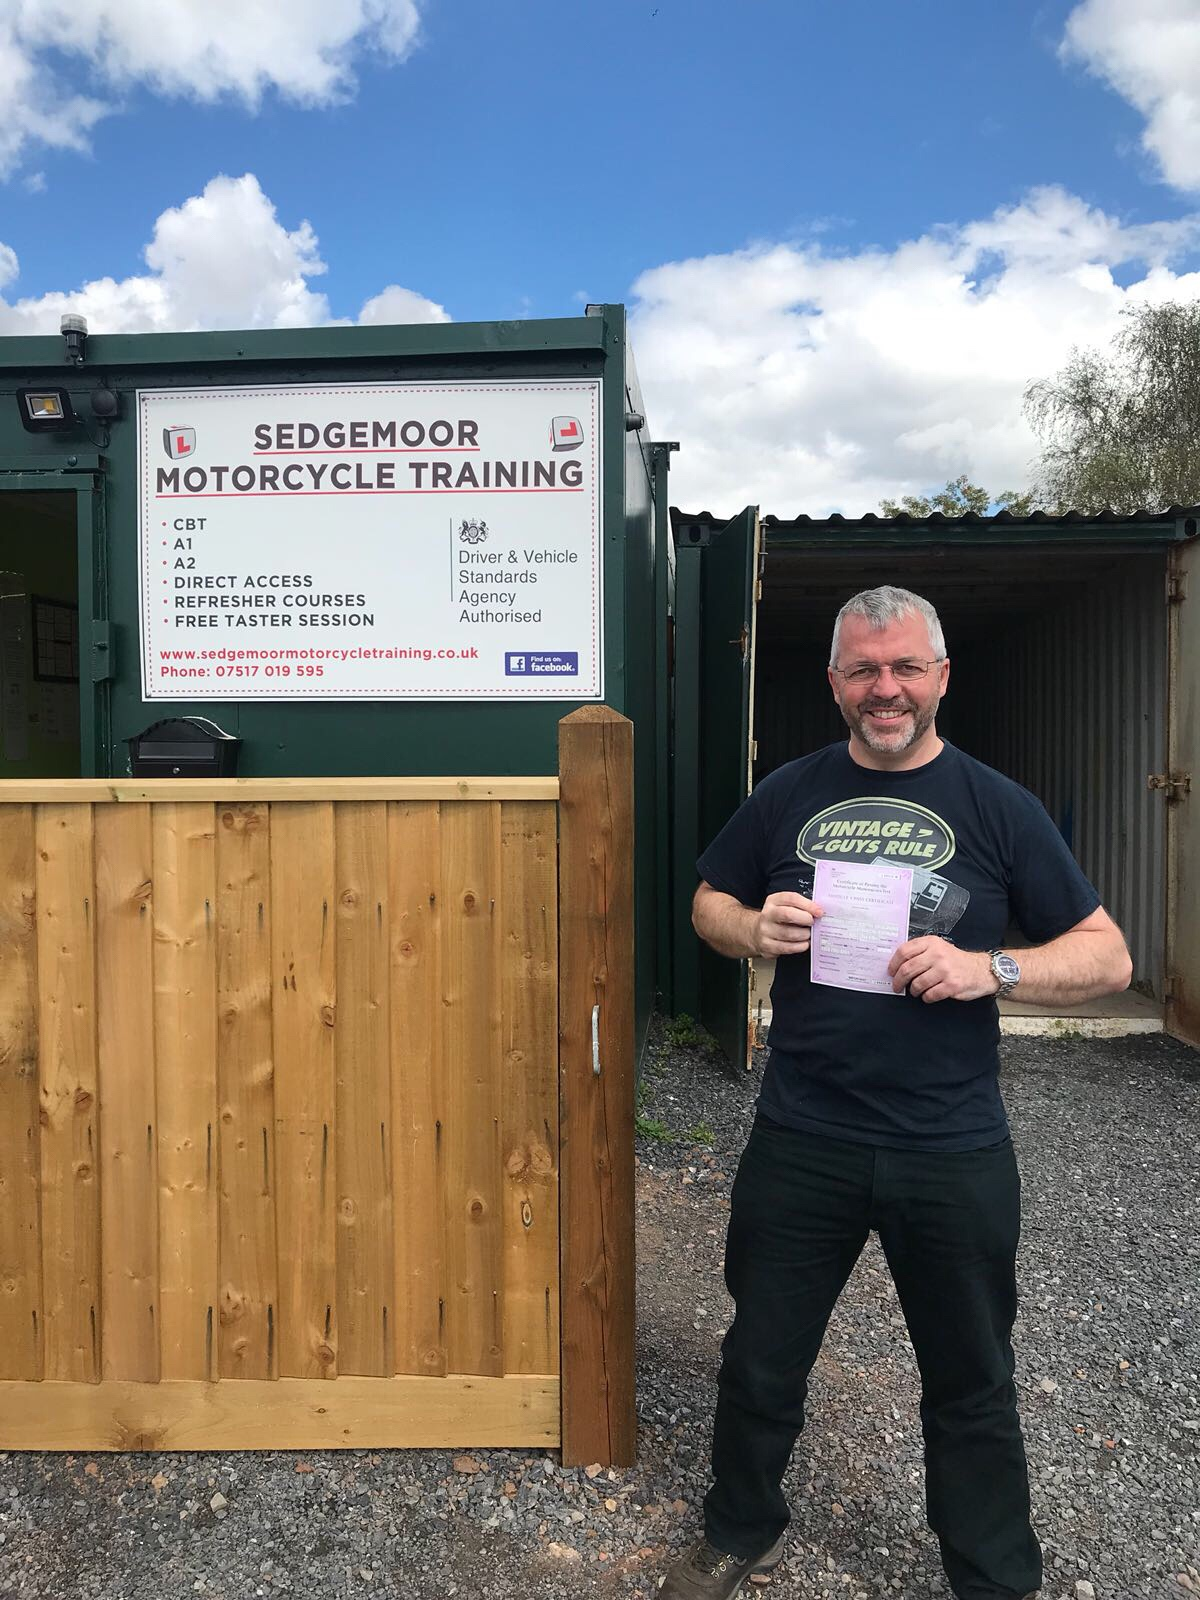 Motorcycle student passes with Sedgemoor Motorcycle Training